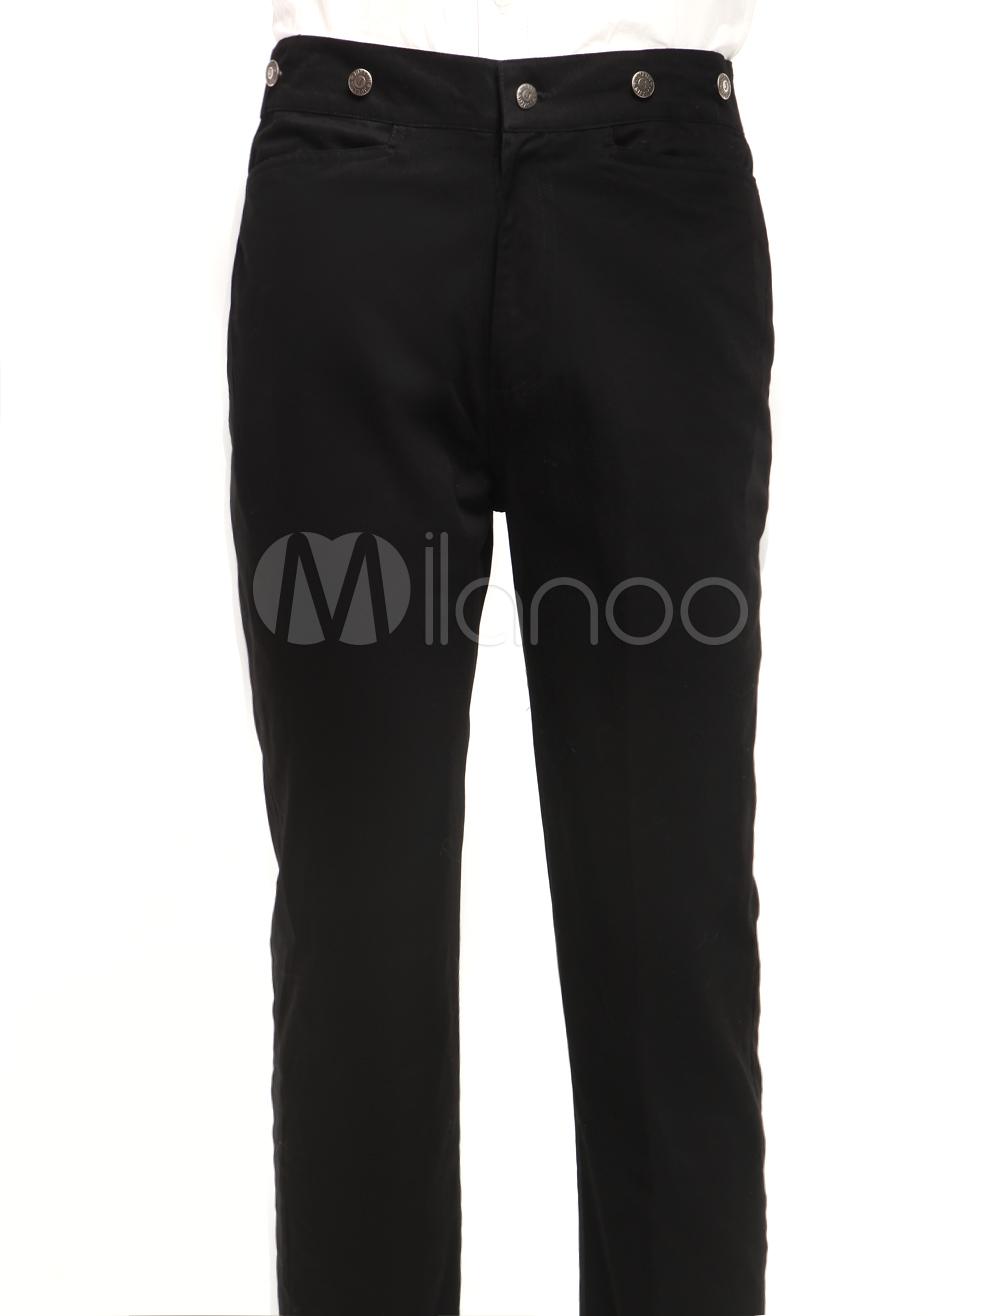 Smart Black Cotton Mens Steampunk Trousers $49.99 AT vintagedancer.com